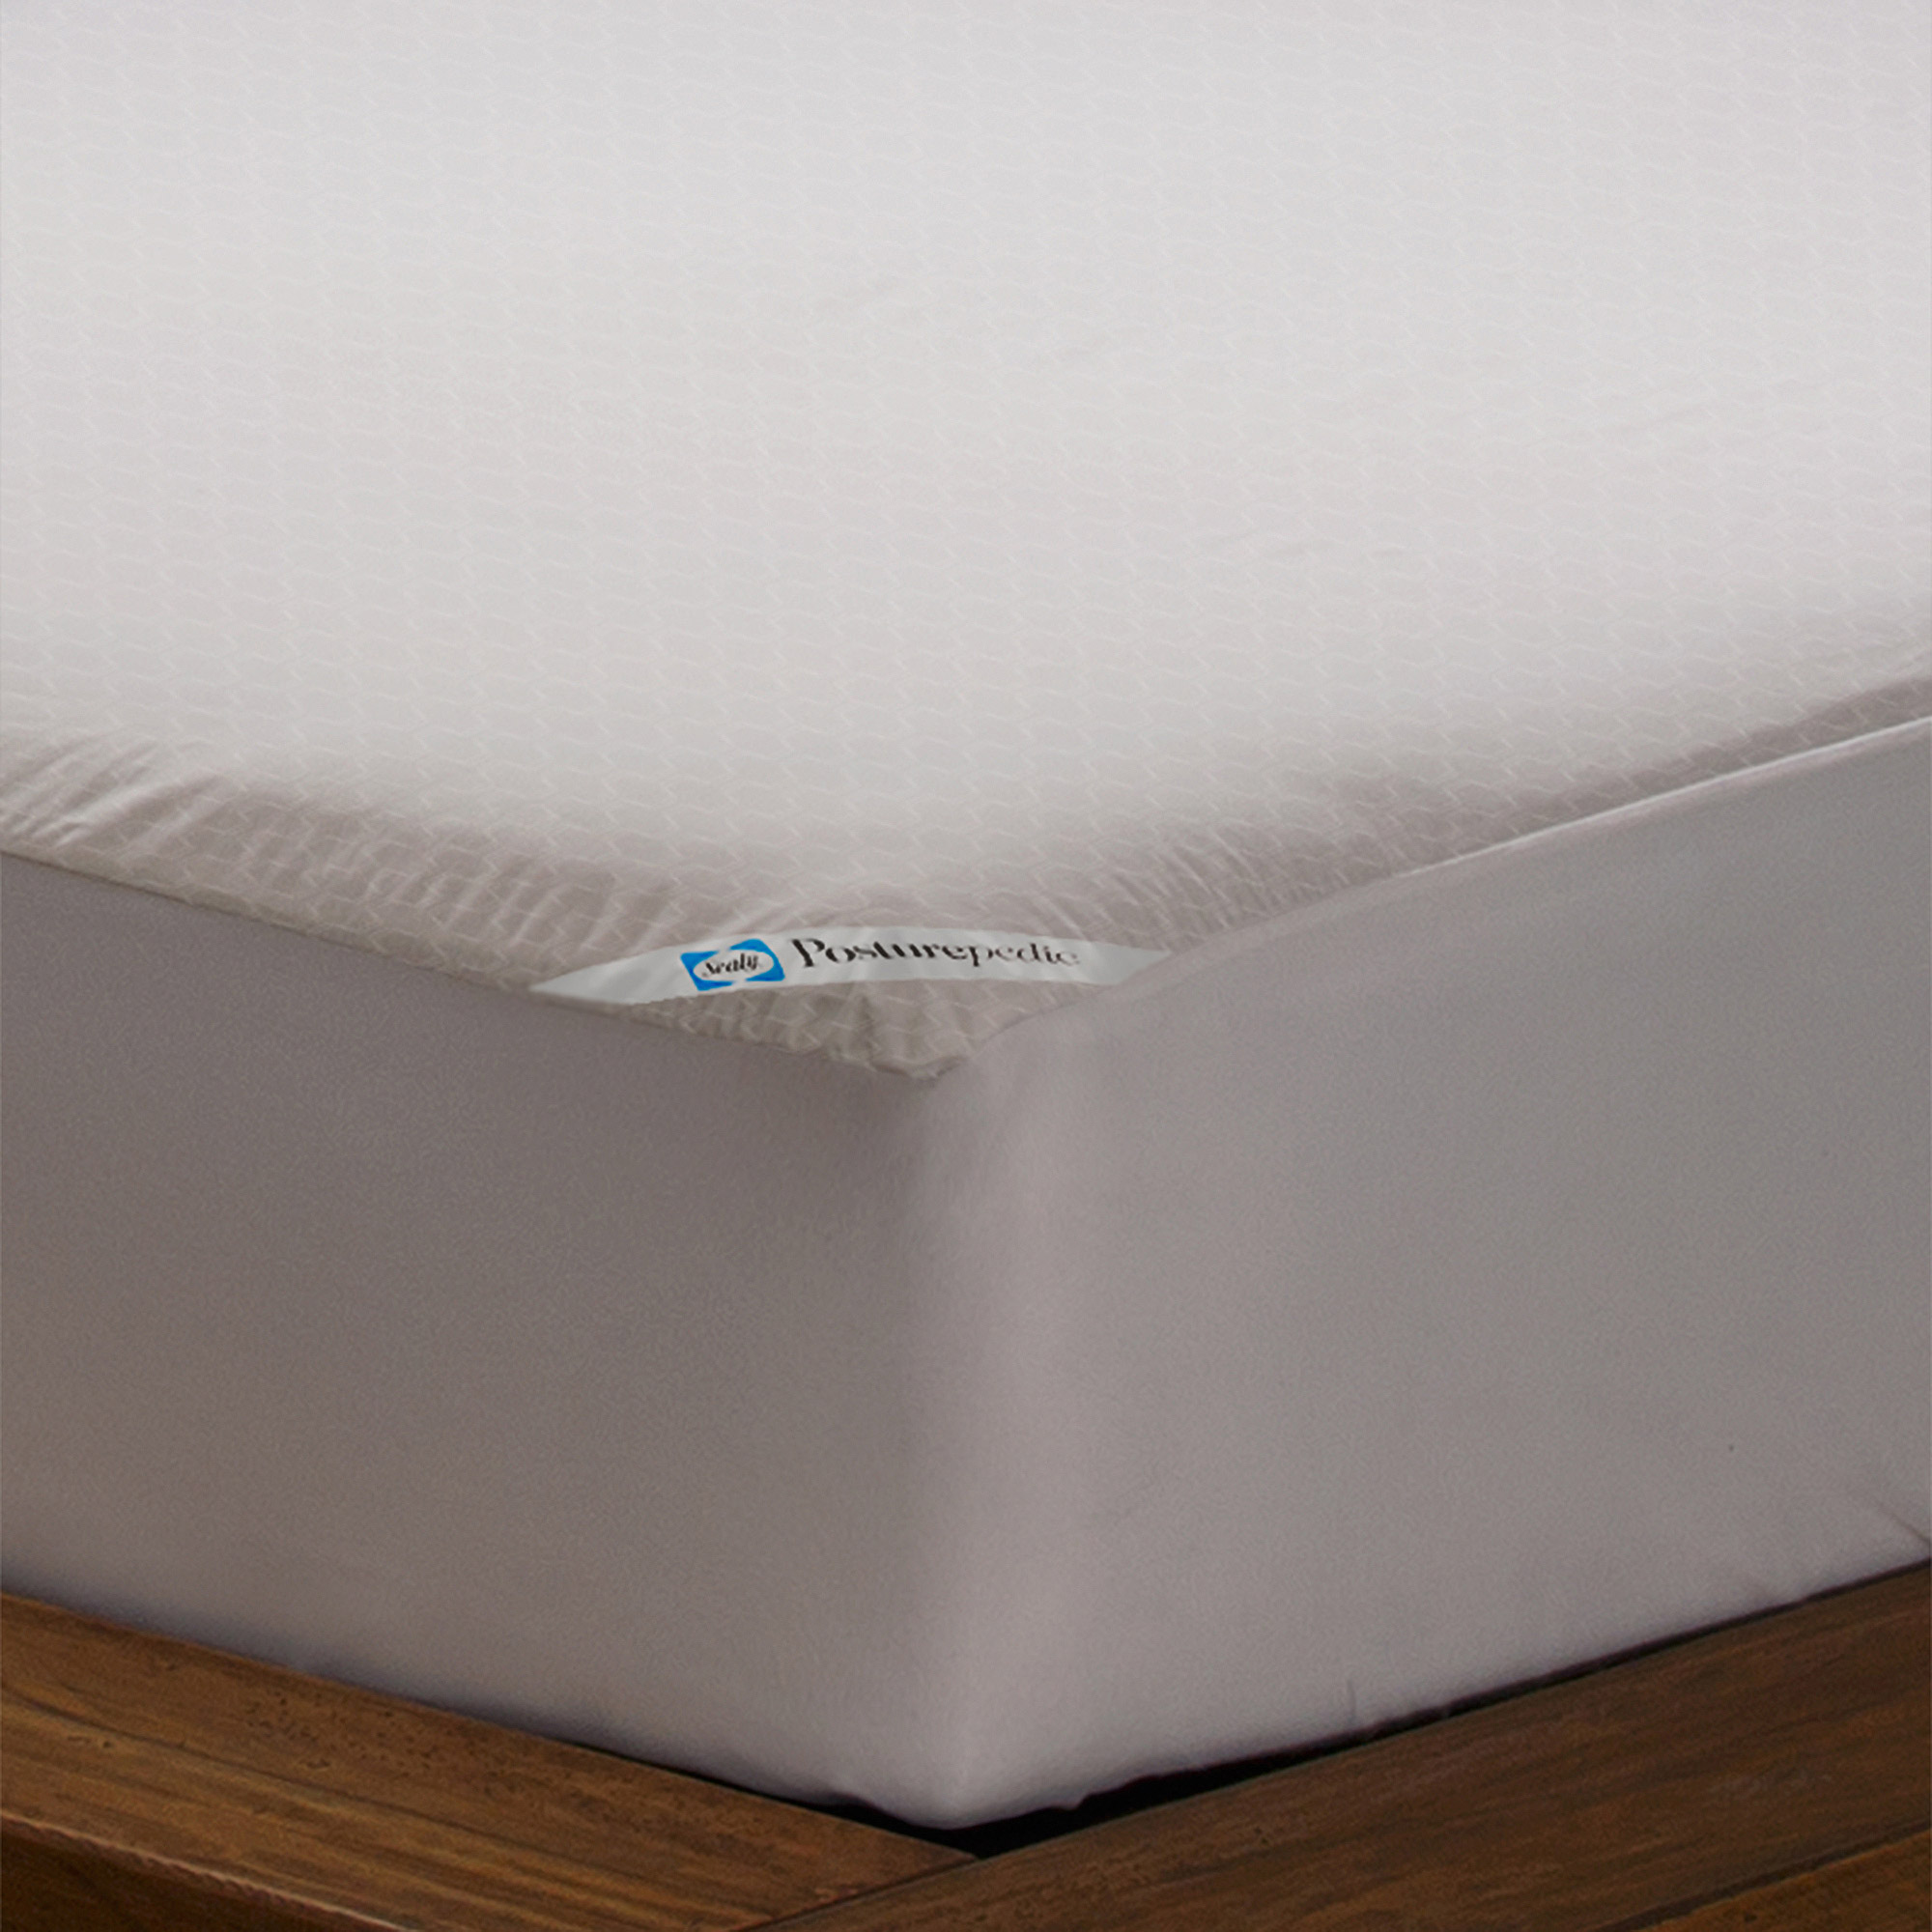 Sealy Posturepedic Allergy Protection Zippered Mattress Encasement -  Walmart.com